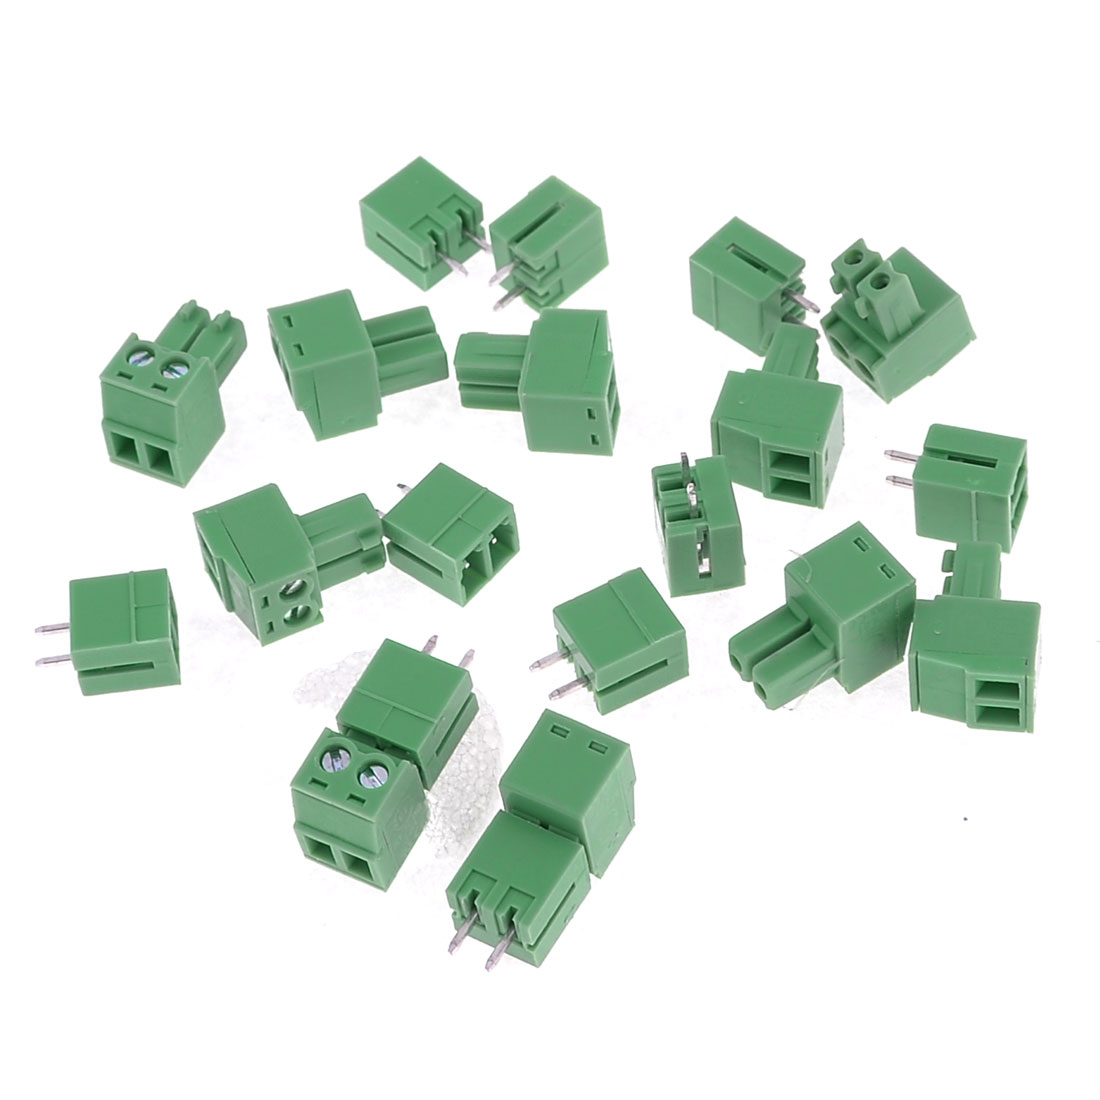 10 Pcs KF2EDG-3.81-2T 300VAC 8A Block Terminal Connectors Green